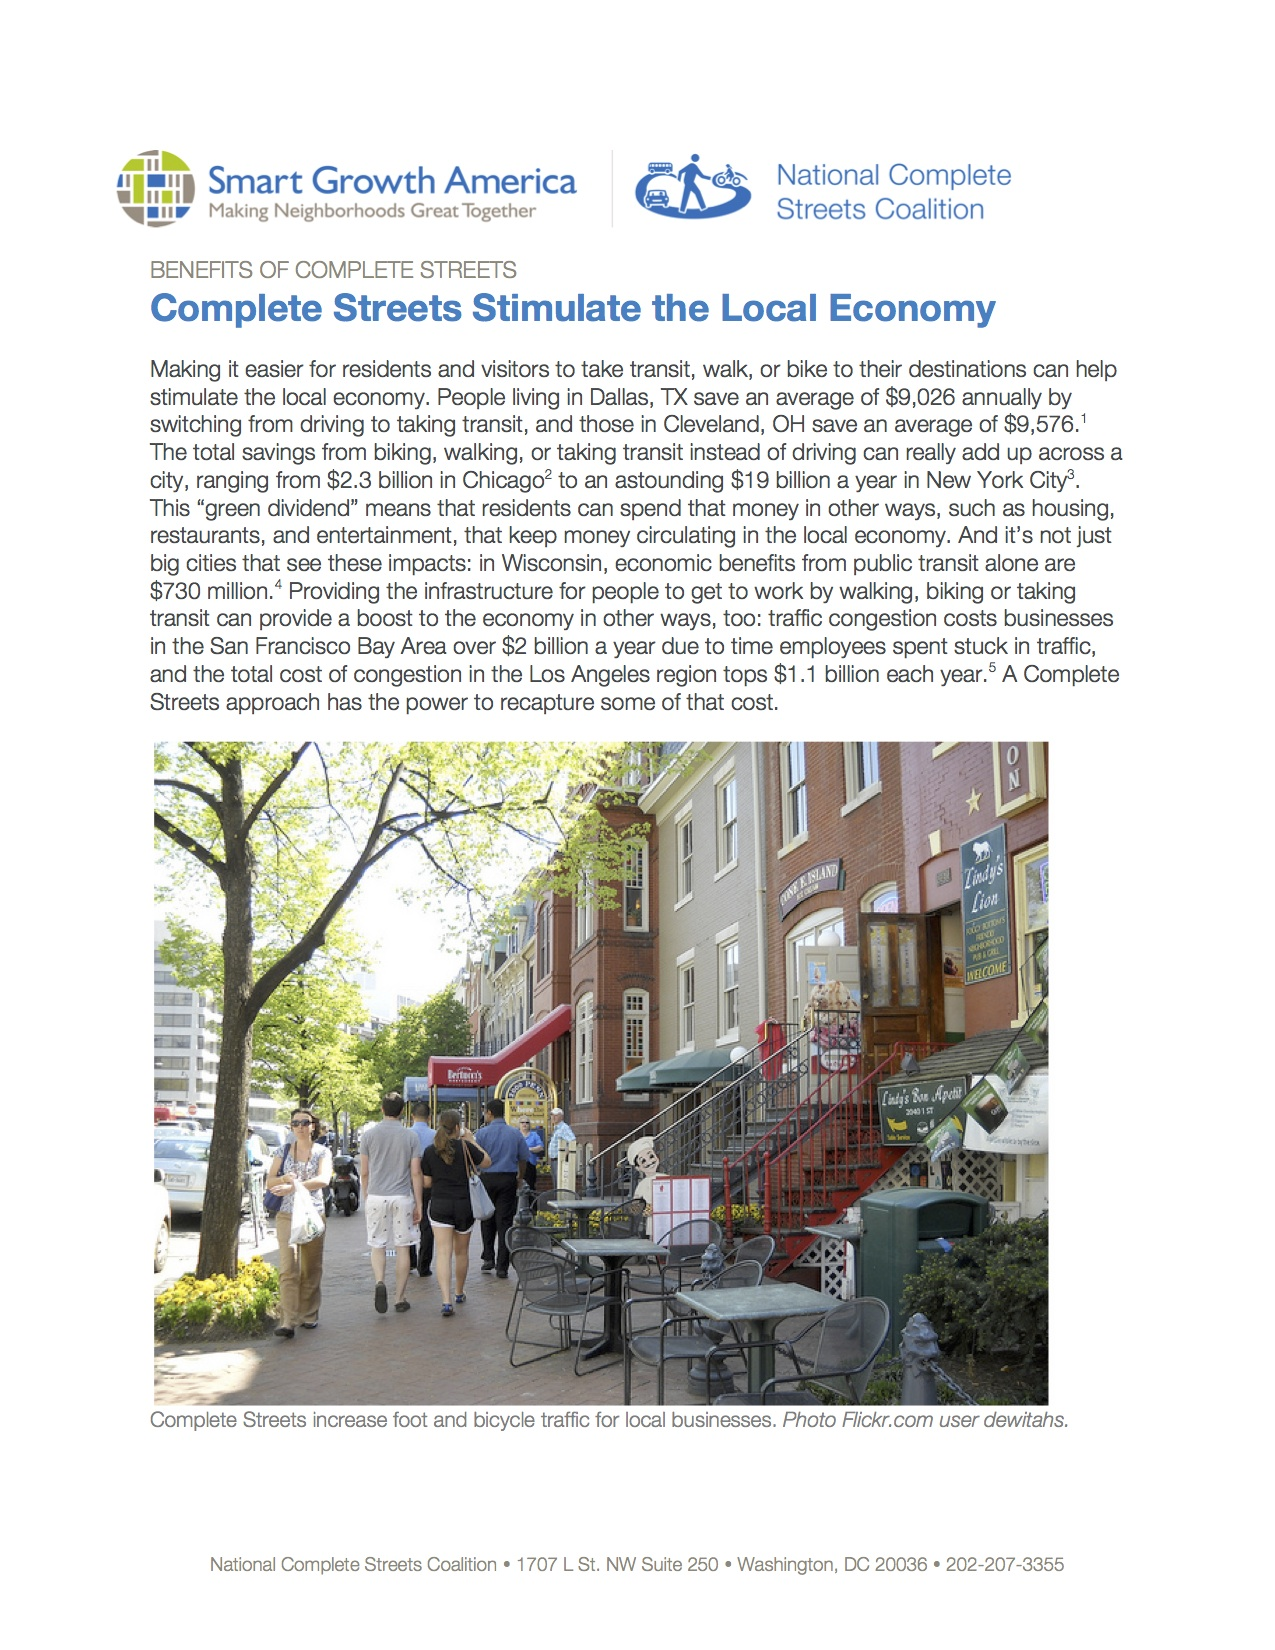 Economic Revitalization: Benefits of Complete Streets